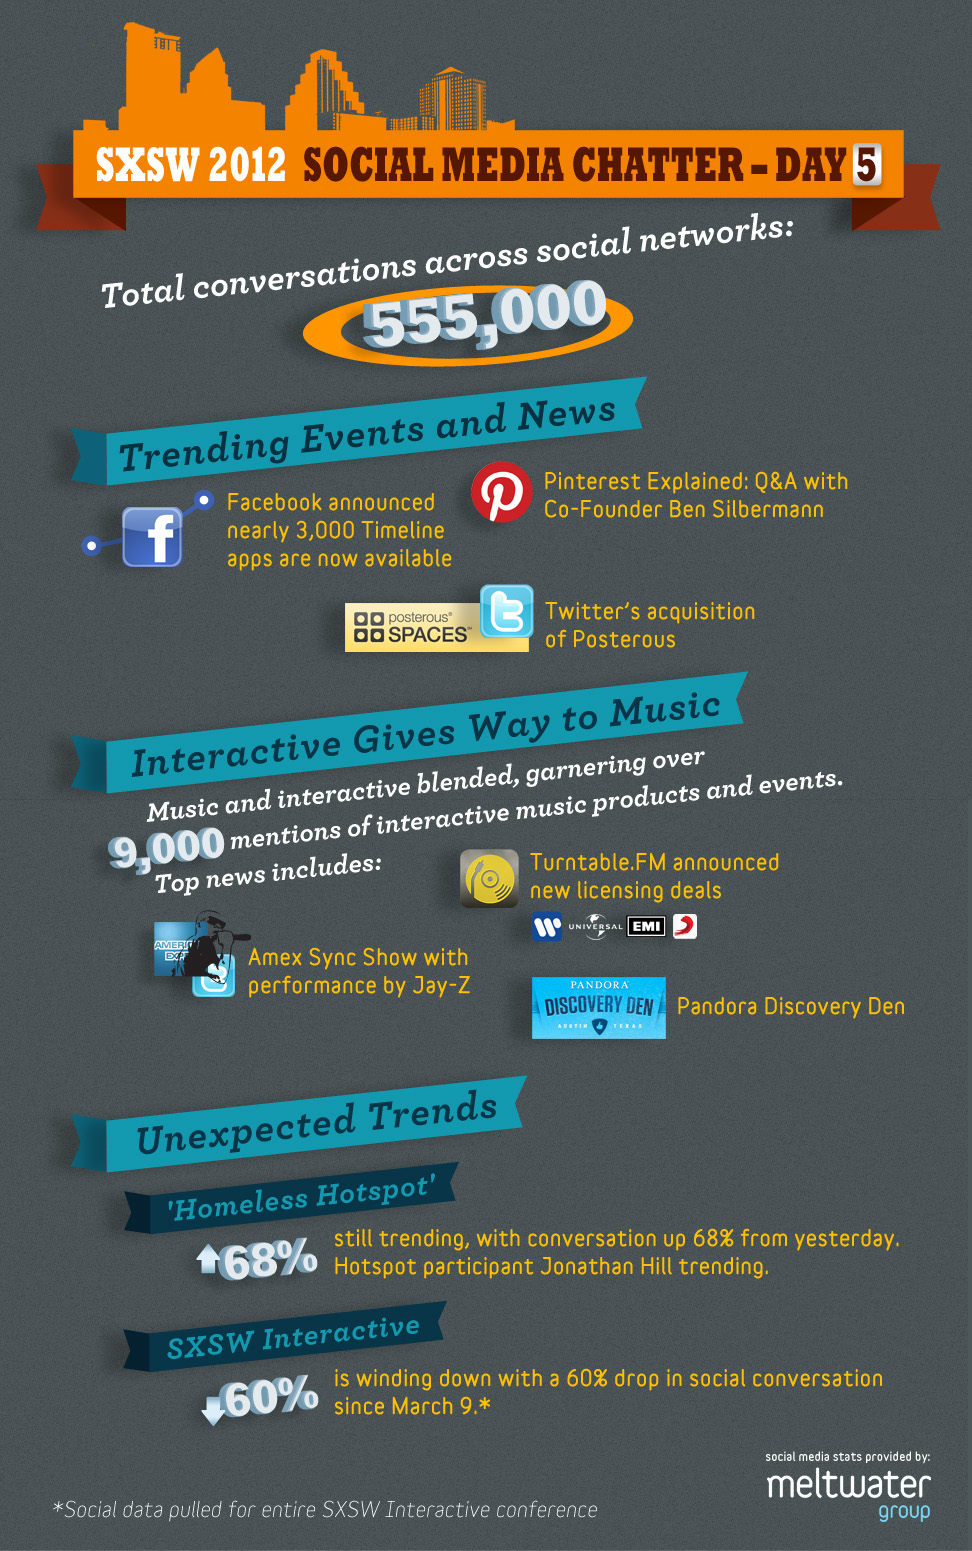 Meltwater SXSW social media day 5 infographic